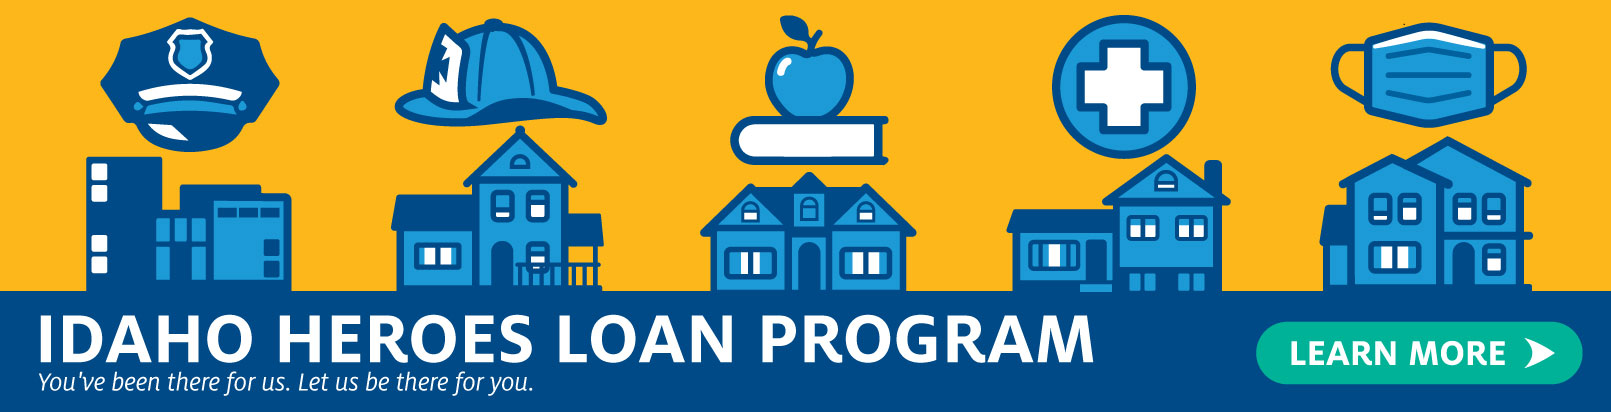 Idaho Heroes Home Loan Program